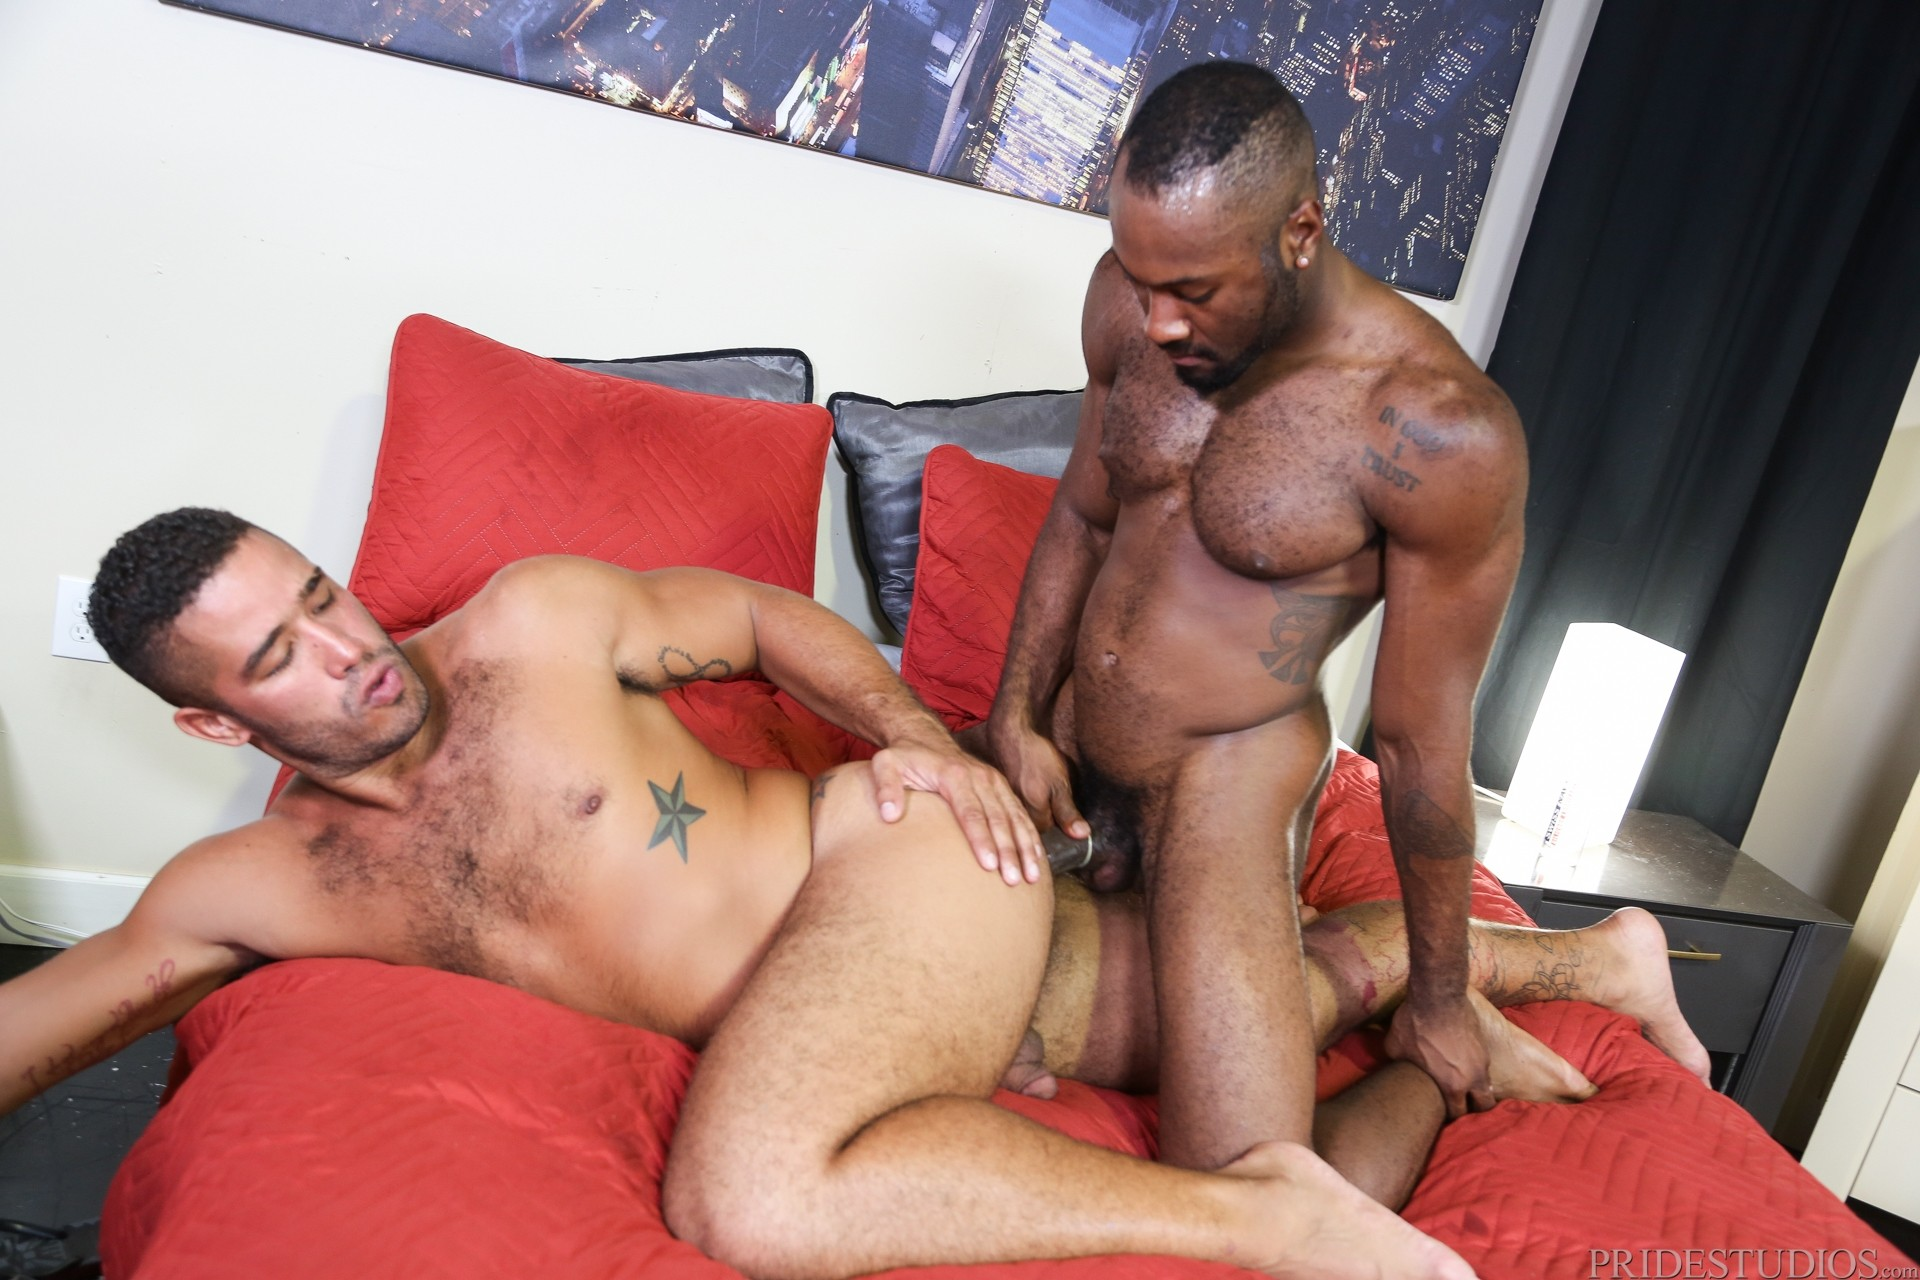 Best Big Cock gay videos, high quality Big Cock porn movies and so much more!